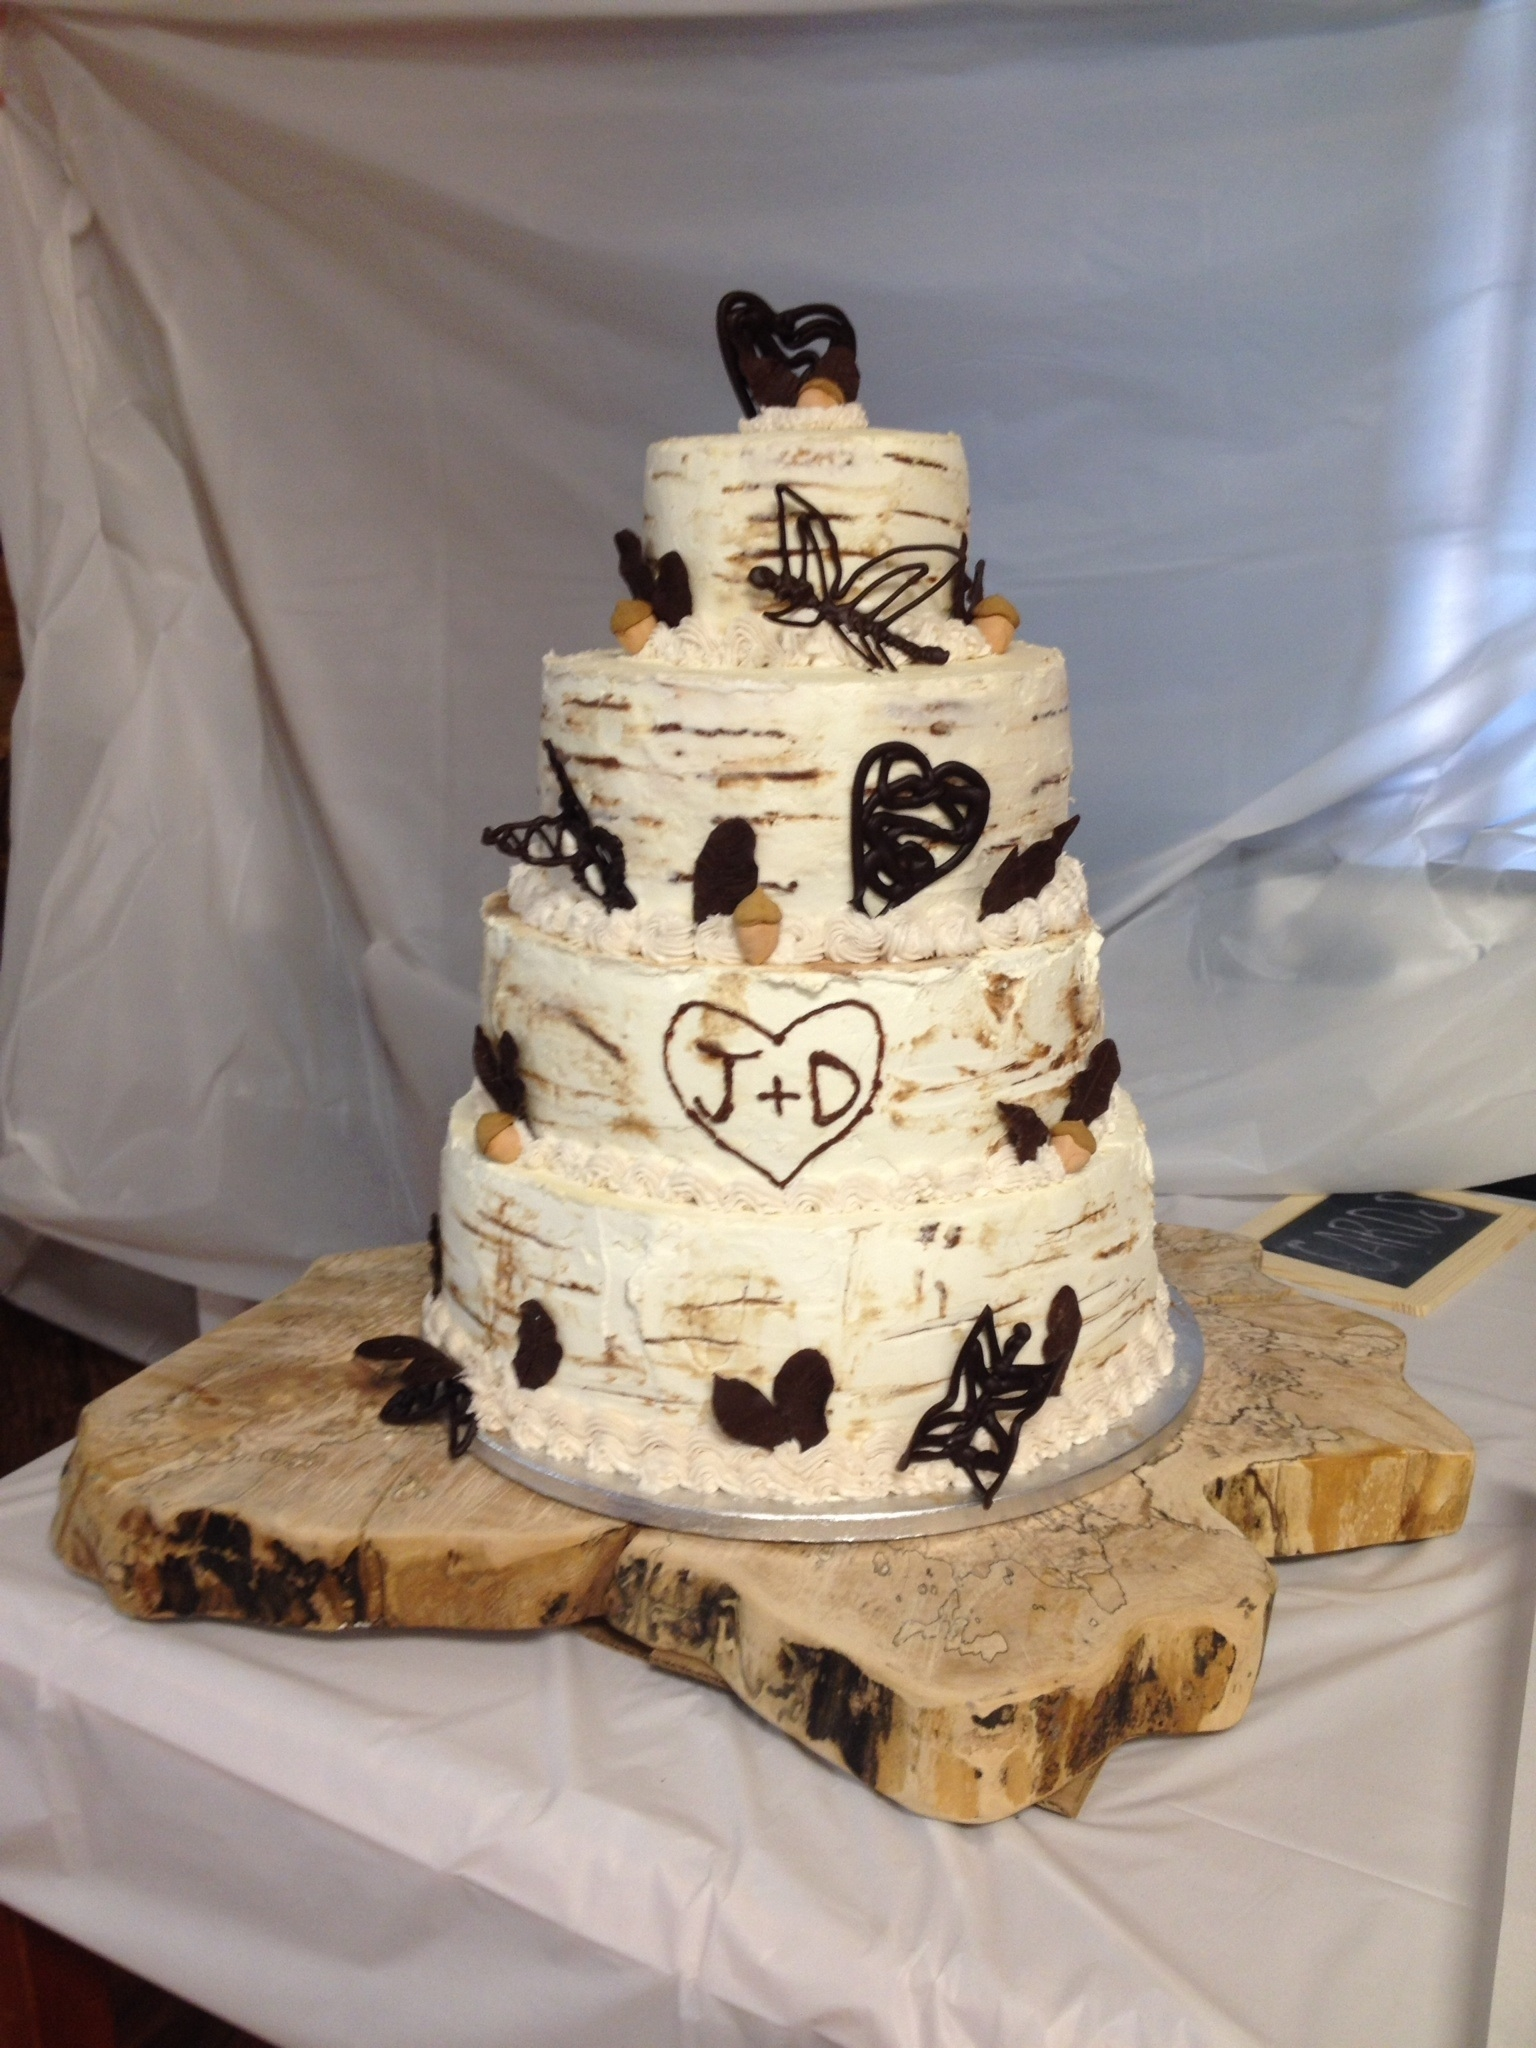 birch wedding cake smbc icing birch tree cake. Black Bedroom Furniture Sets. Home Design Ideas